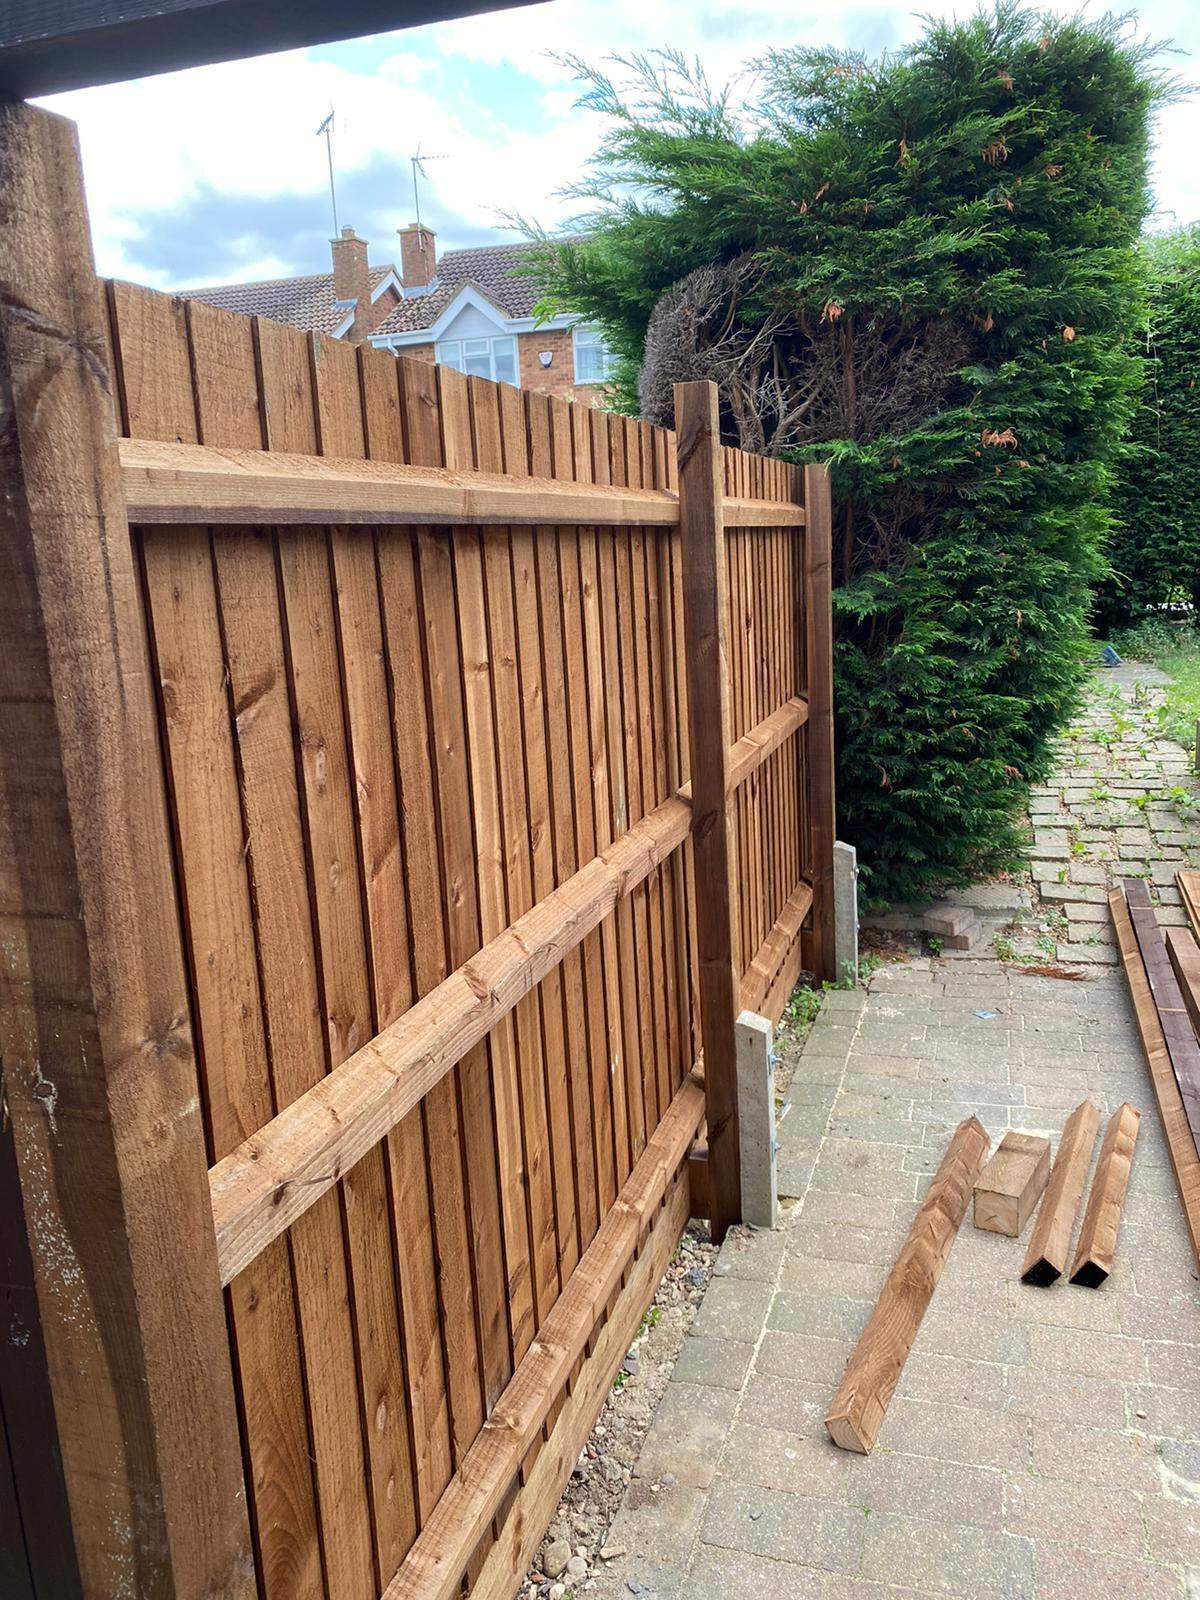 New Featheredge Fencing Installed in Gunthorpe